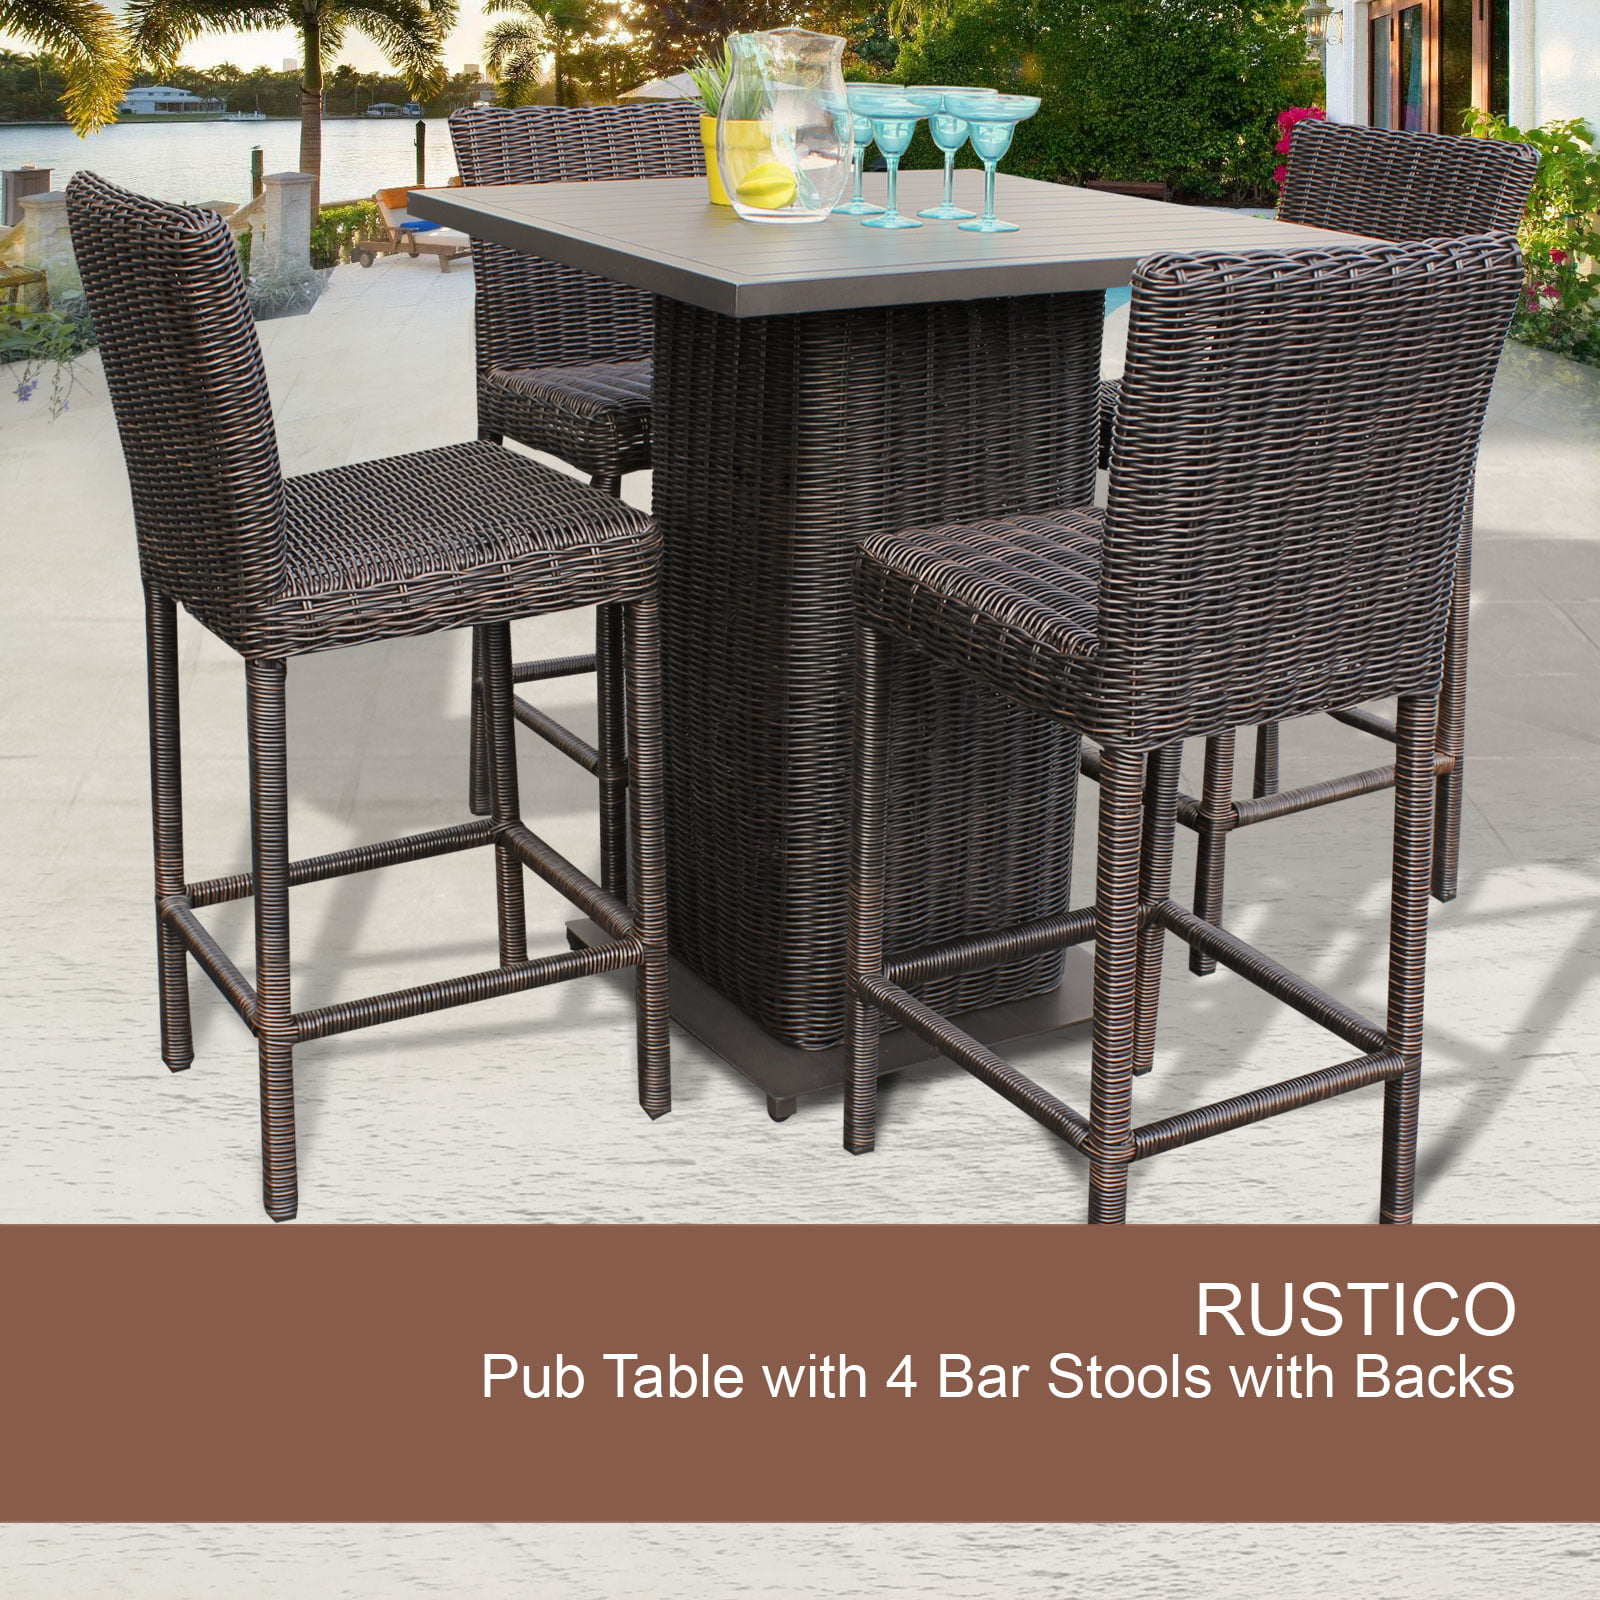 Merveilleux Rustico Pub Table Set With Barstools 5 Piece Outdoor Wicker Patio Furniture    Walmart.com